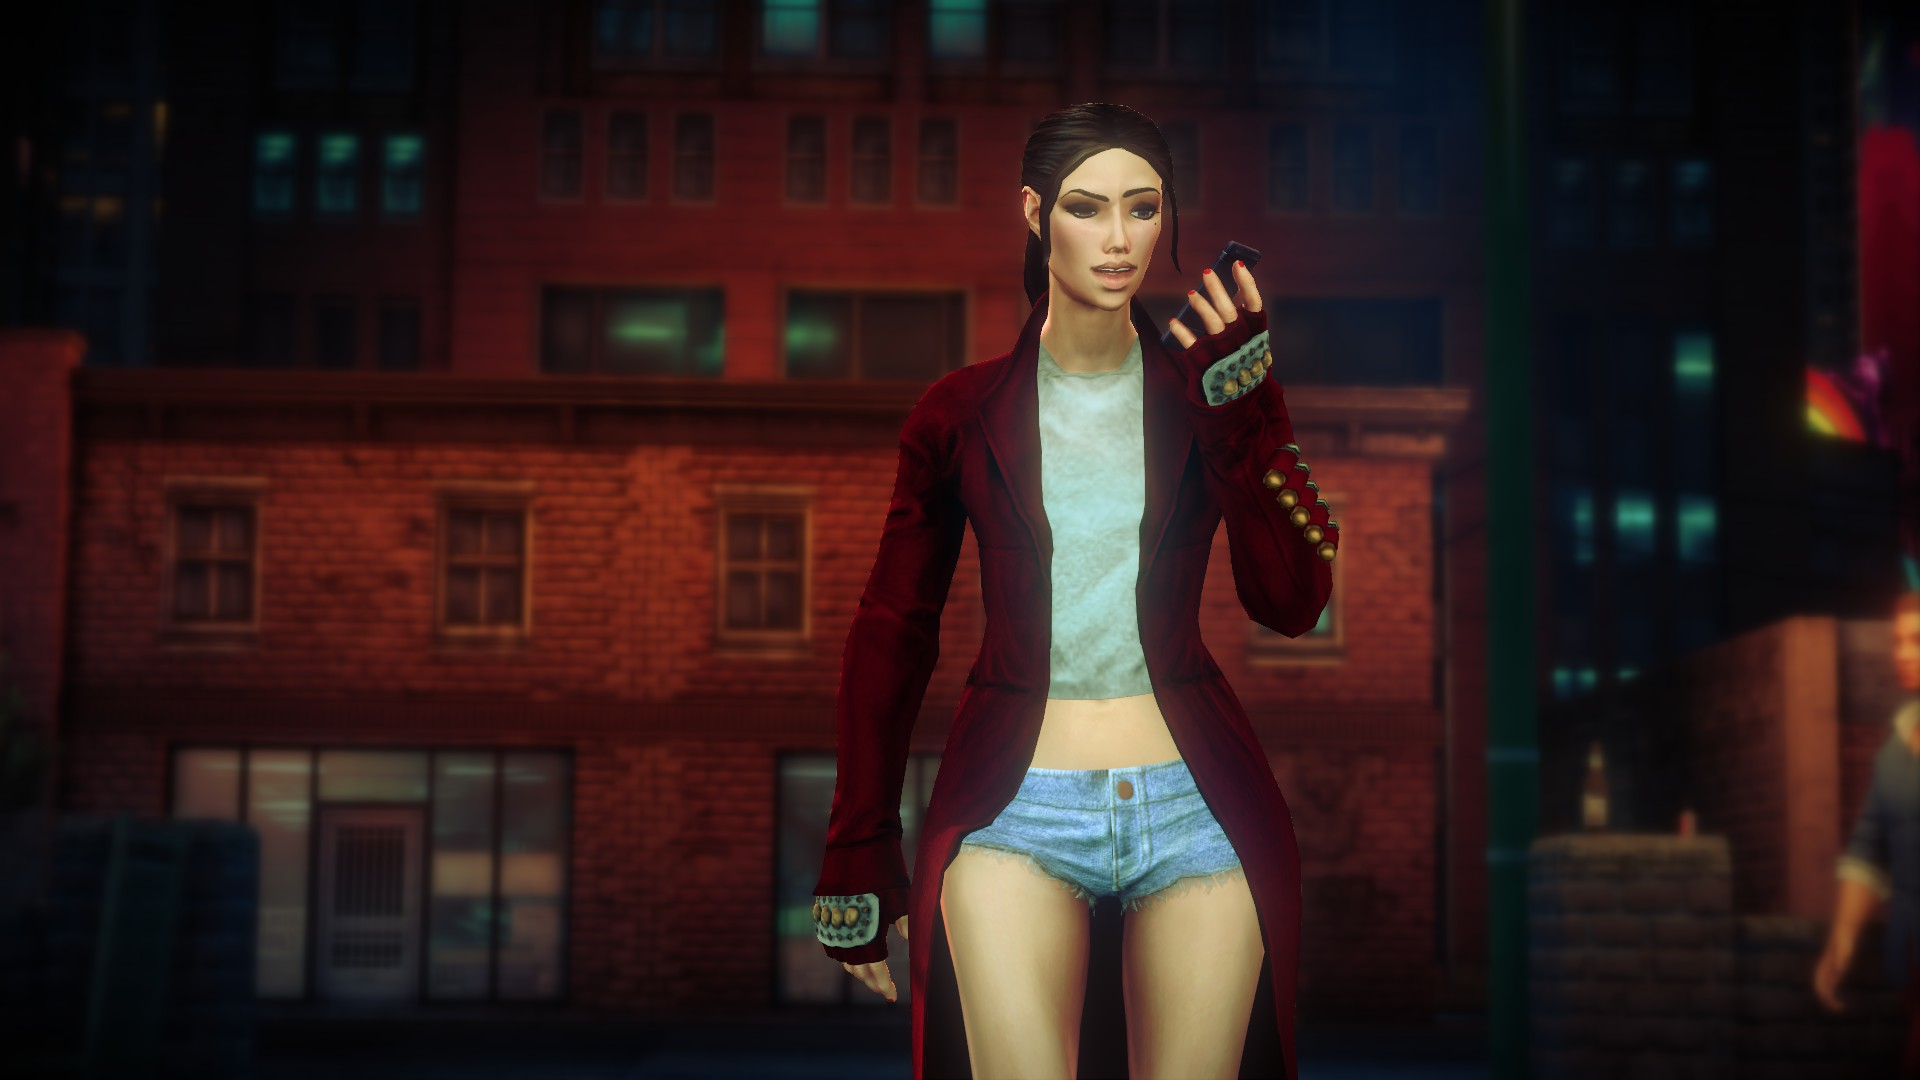 Saints row 4 nudity no pixelated mod hentia pic